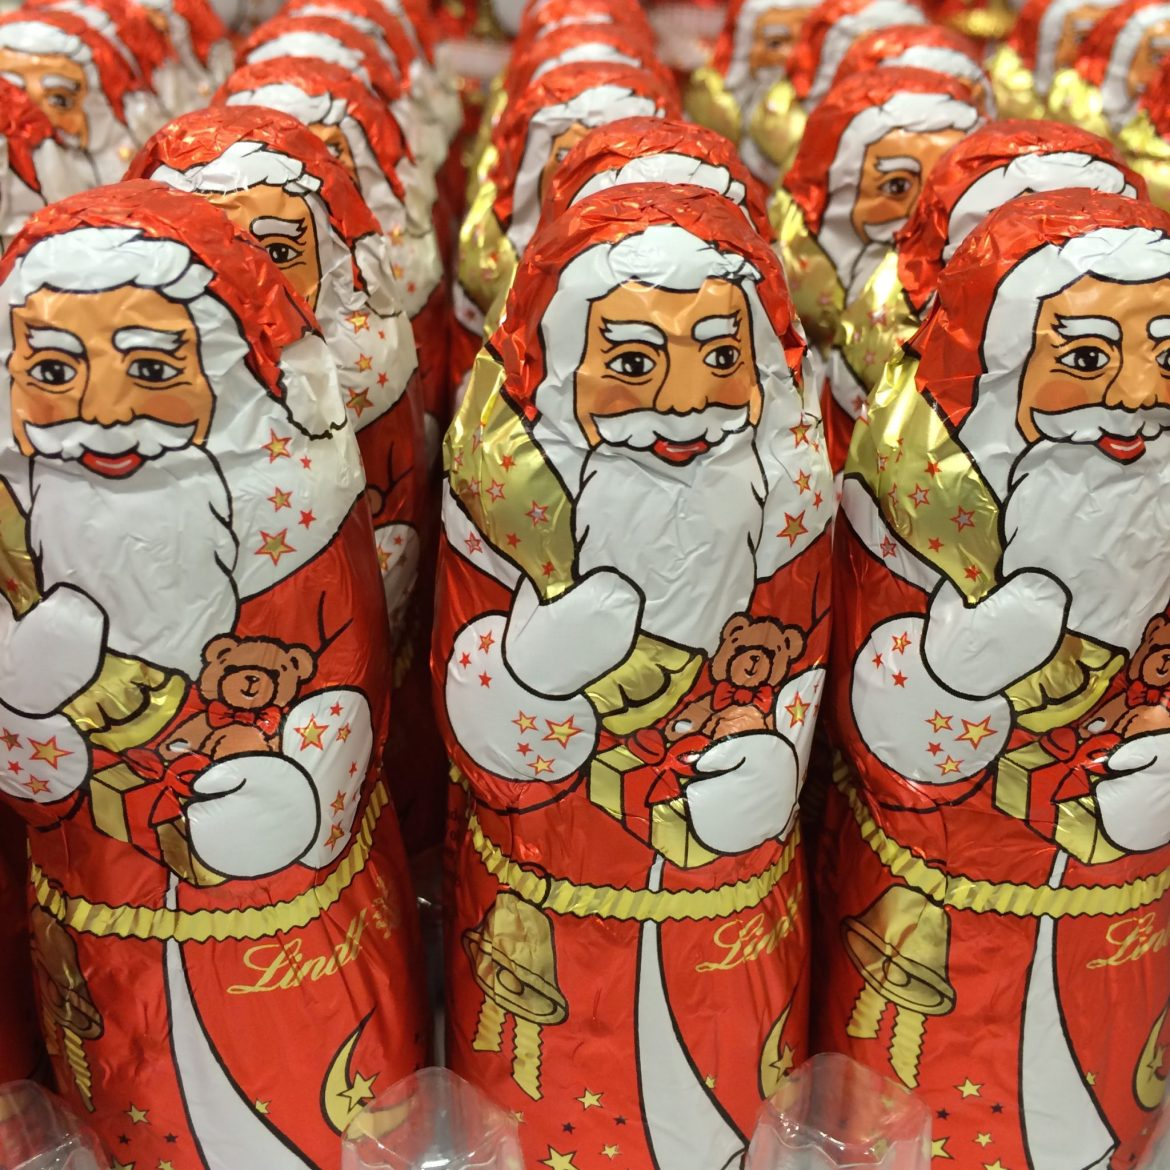 Wrapped chocolate Santa Clauses